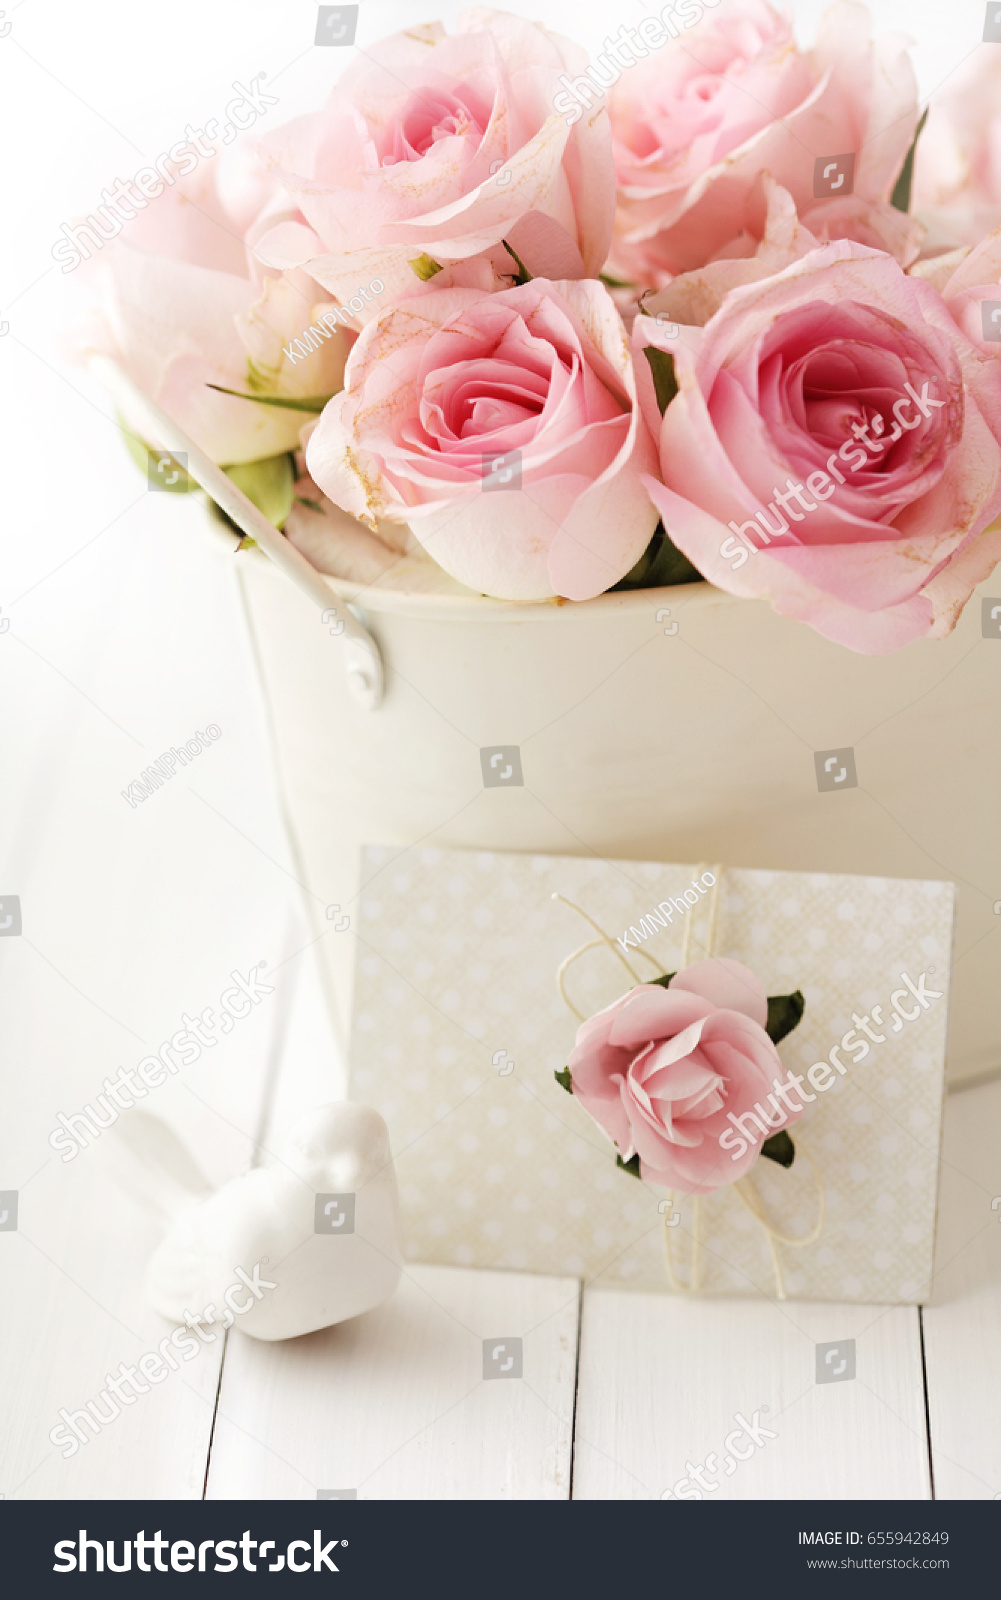 Pink Rose Flowers Vase Love Letter Stock Photo Edit Now 655942849